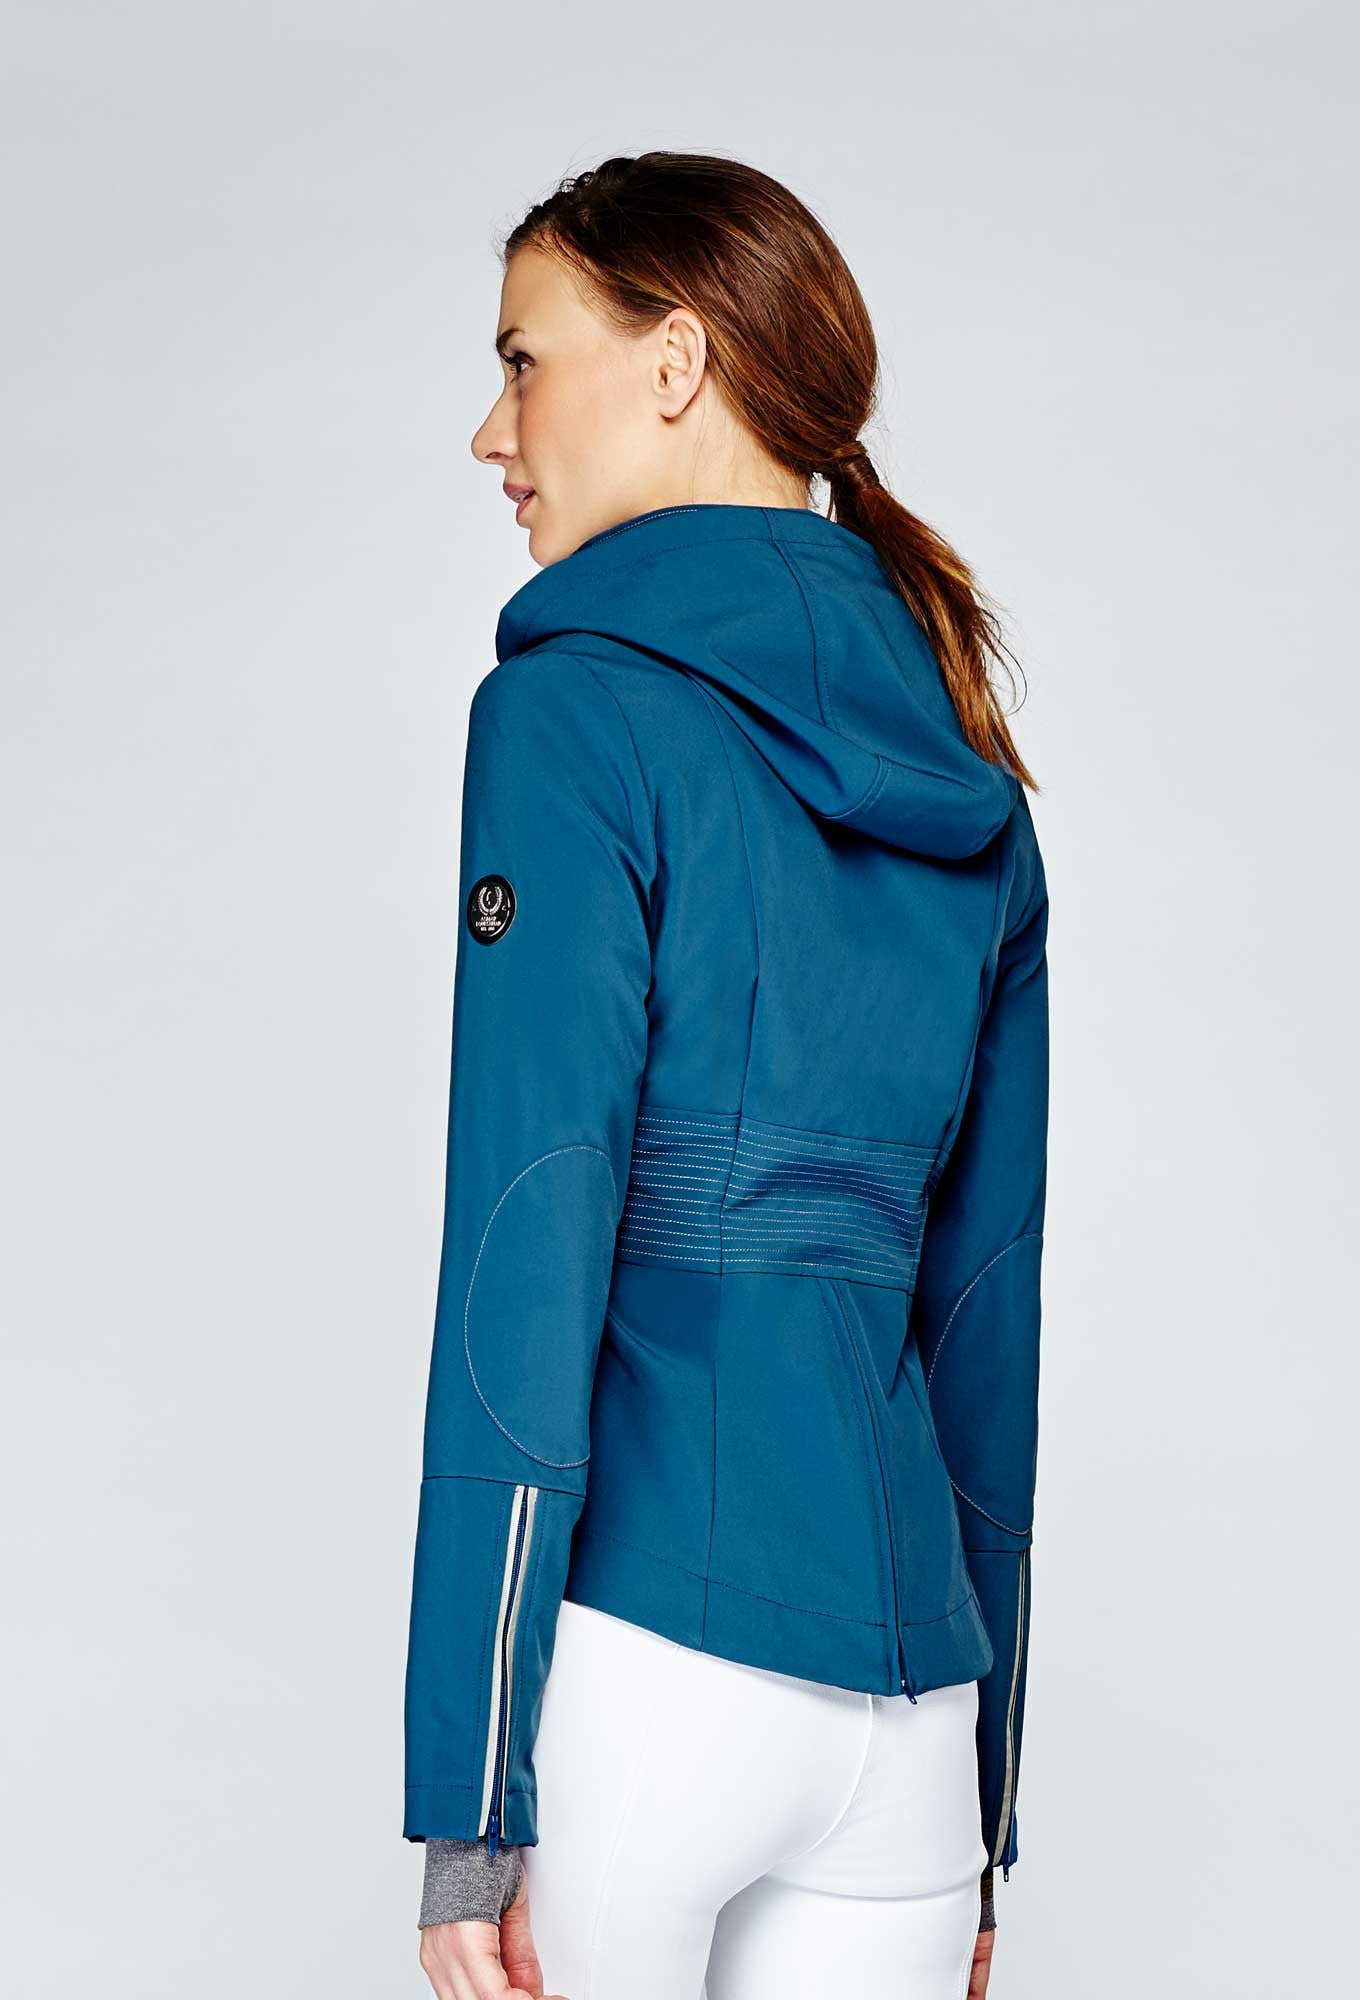 Noel Asmar Special Edition Rider Jacket - Lagoon Blue - Uptown E Store